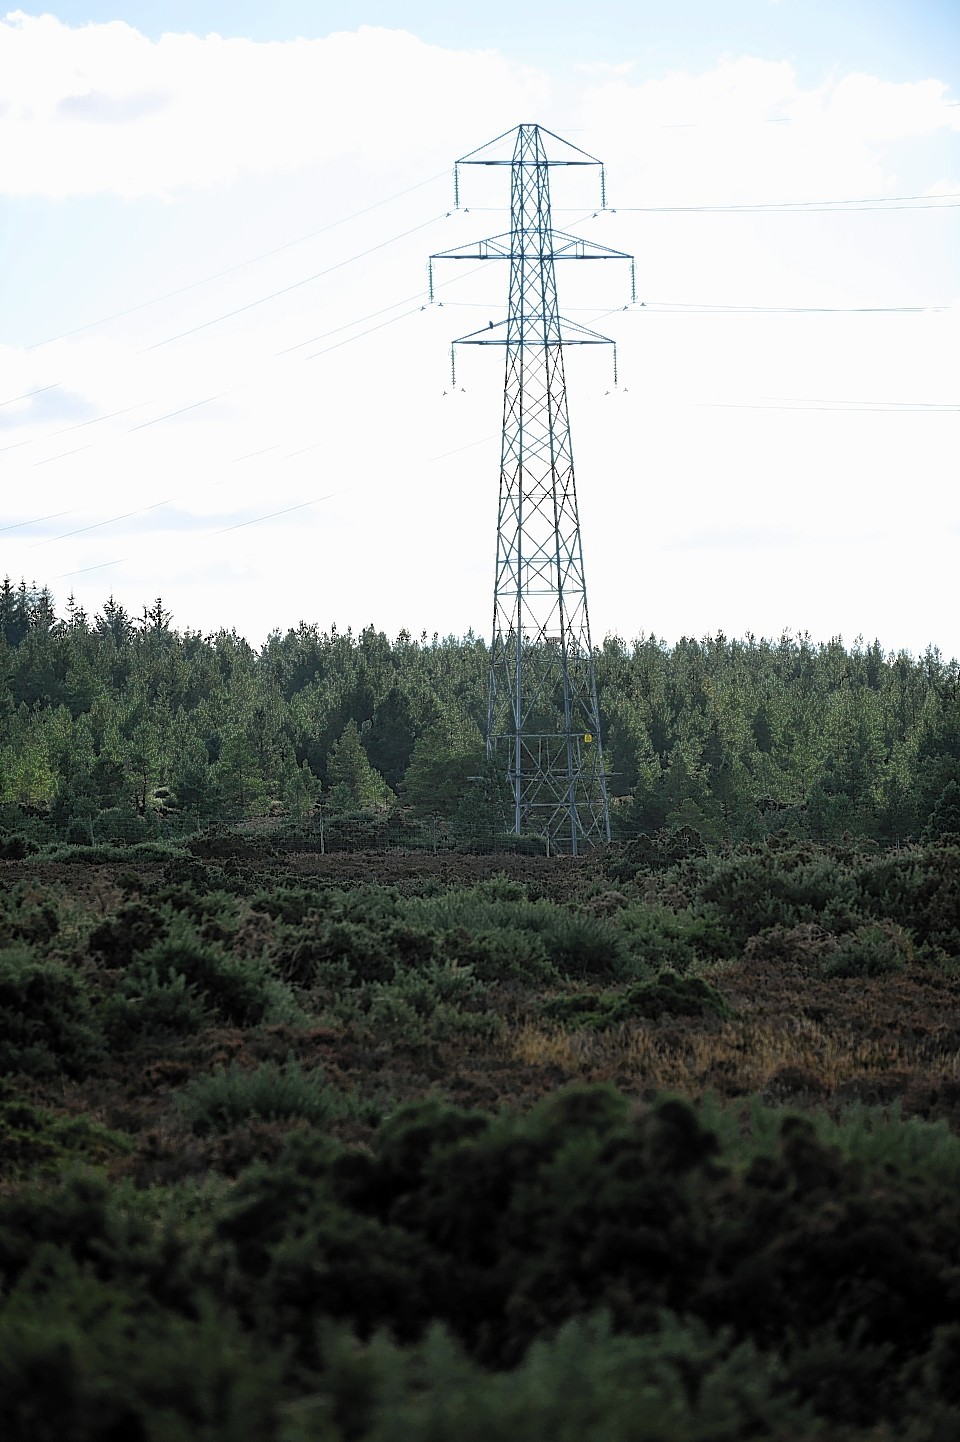 The planned site of the Carr Bann windfarm